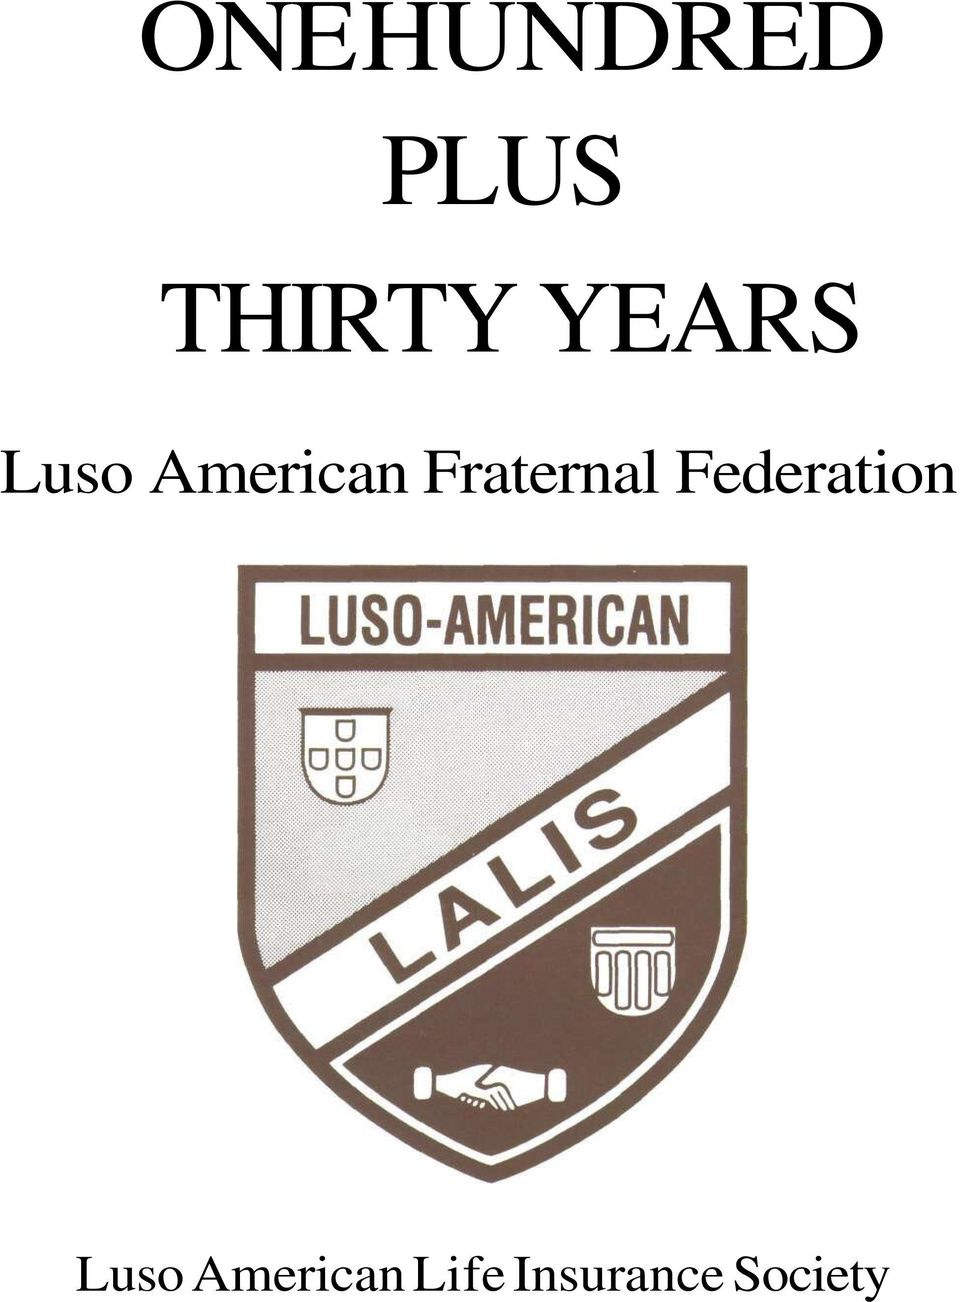 Fraternal Federation Luso